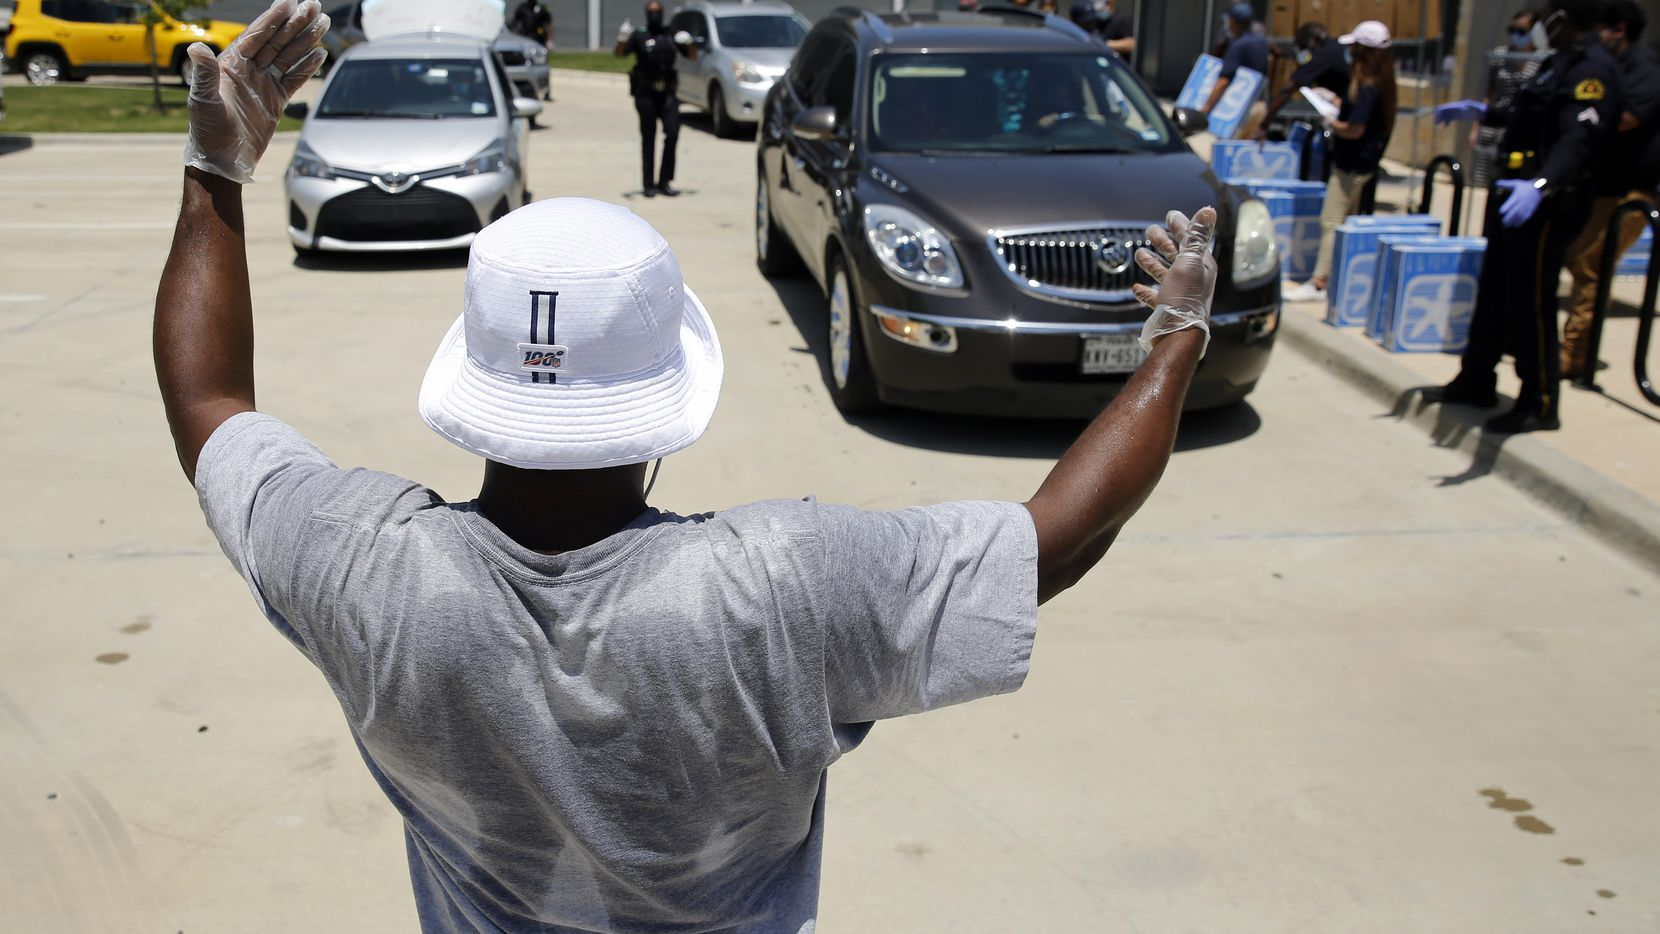 Former Dallas Cowboys player Raghib 'Rocket' Ismail directs traffic as Dallas Police officers help hand out food, fans and PPE to families at the Salvation Army's Pleasant Grove Community Corps Community in Dallas, Thursday, July 16, 2020. Joining him were Dallas Police officers, Salvation Army and Reliant volunteers. The event helped raise awareness about the services available to families in North Texas at 13 different centers.